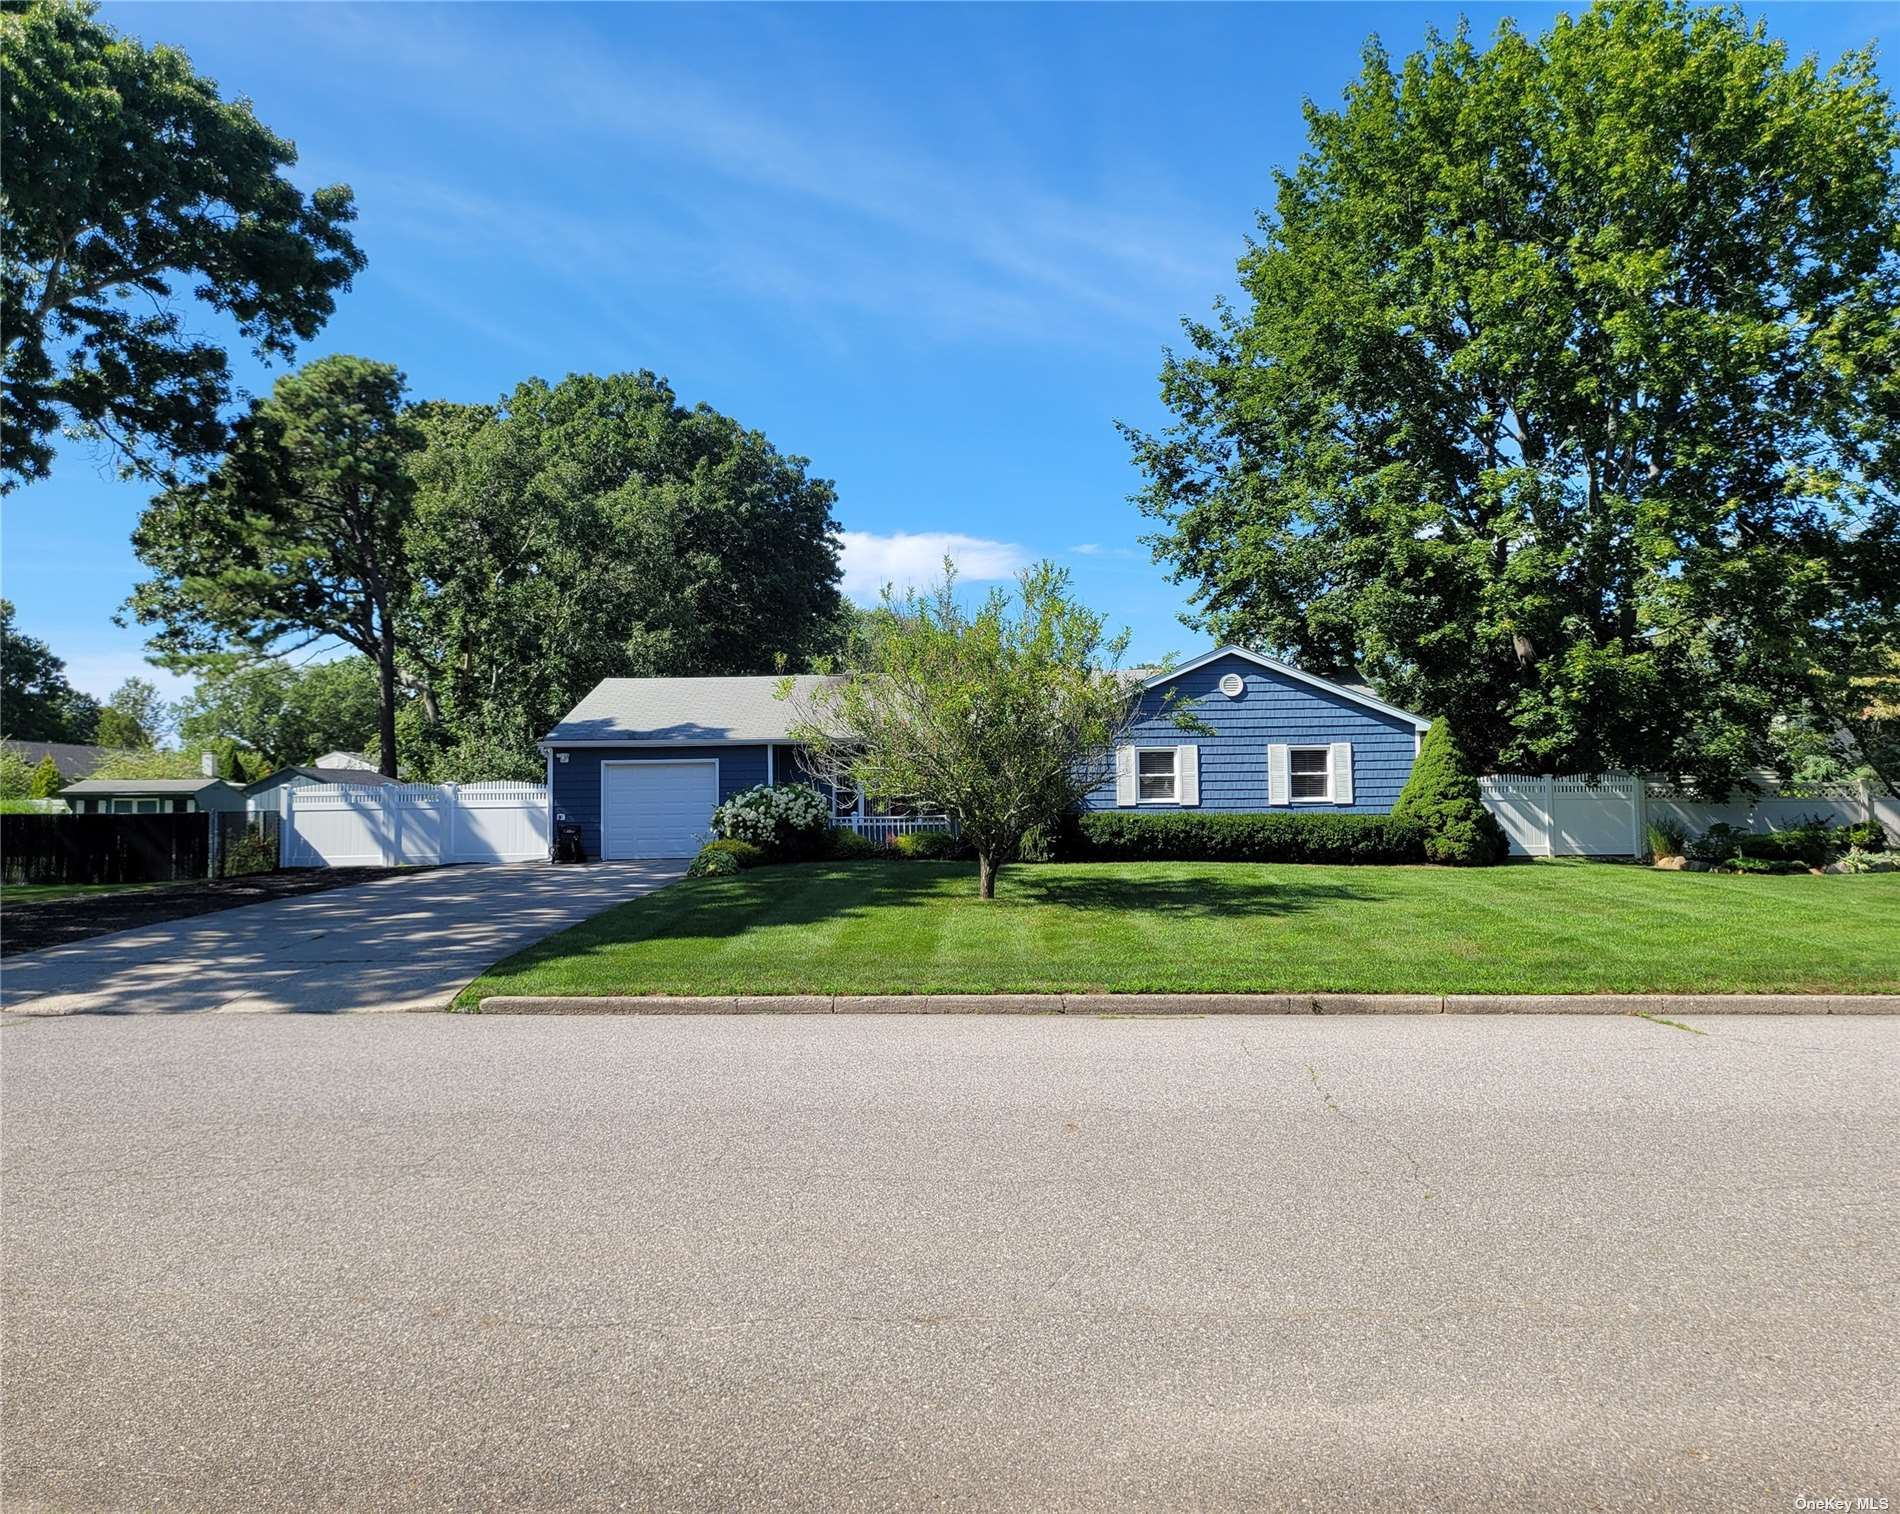 15 Cullen Lane, Middle Island, NY 11953 - #: 3338595